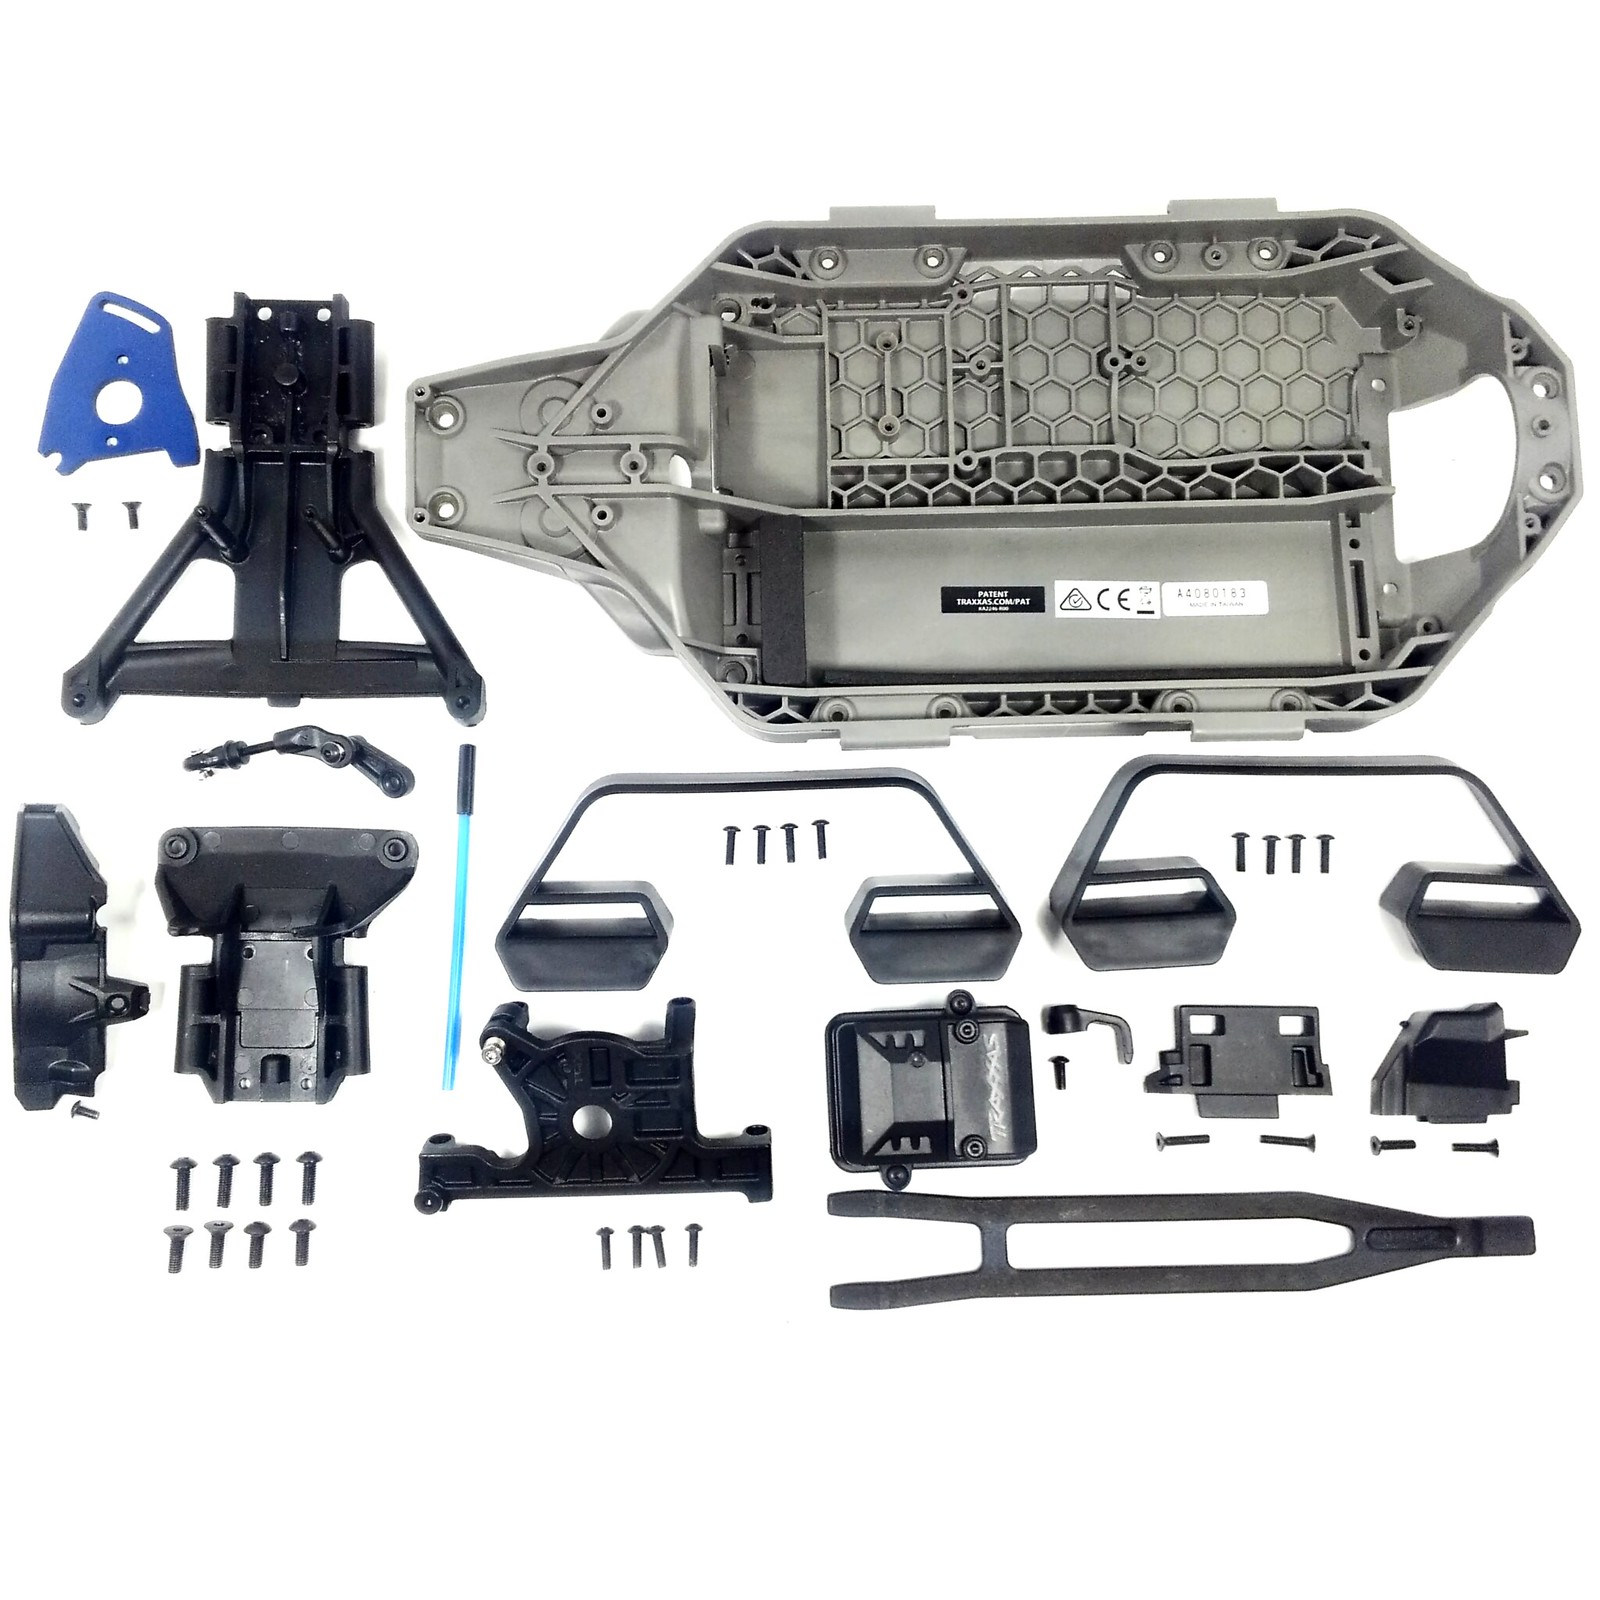 low cg chassis design - HD1600×1600